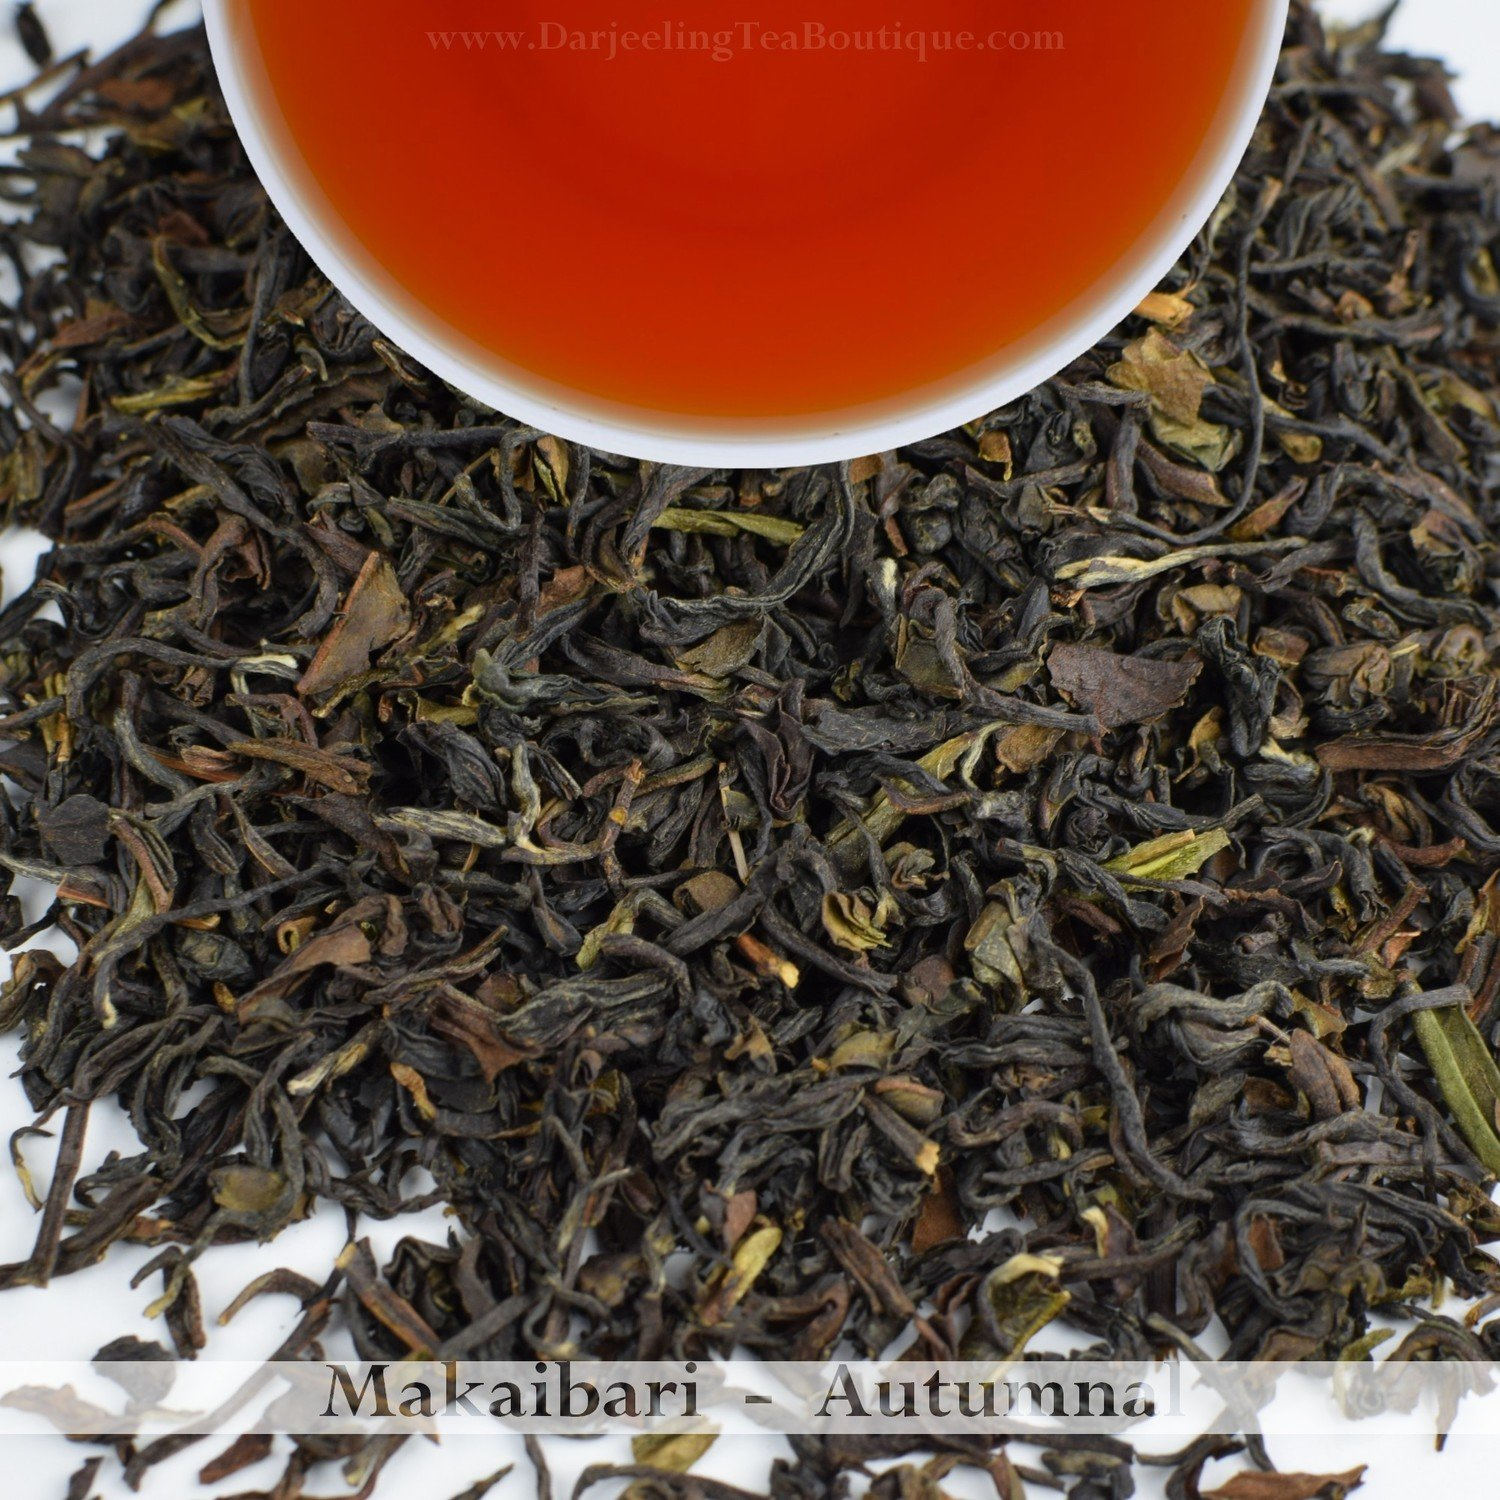 FRAGRANT AUTUMNAL FROM MAKAIBARI  -  Darjeeling Autumn Flush Tea   2017  (100gm / 3.5oz)